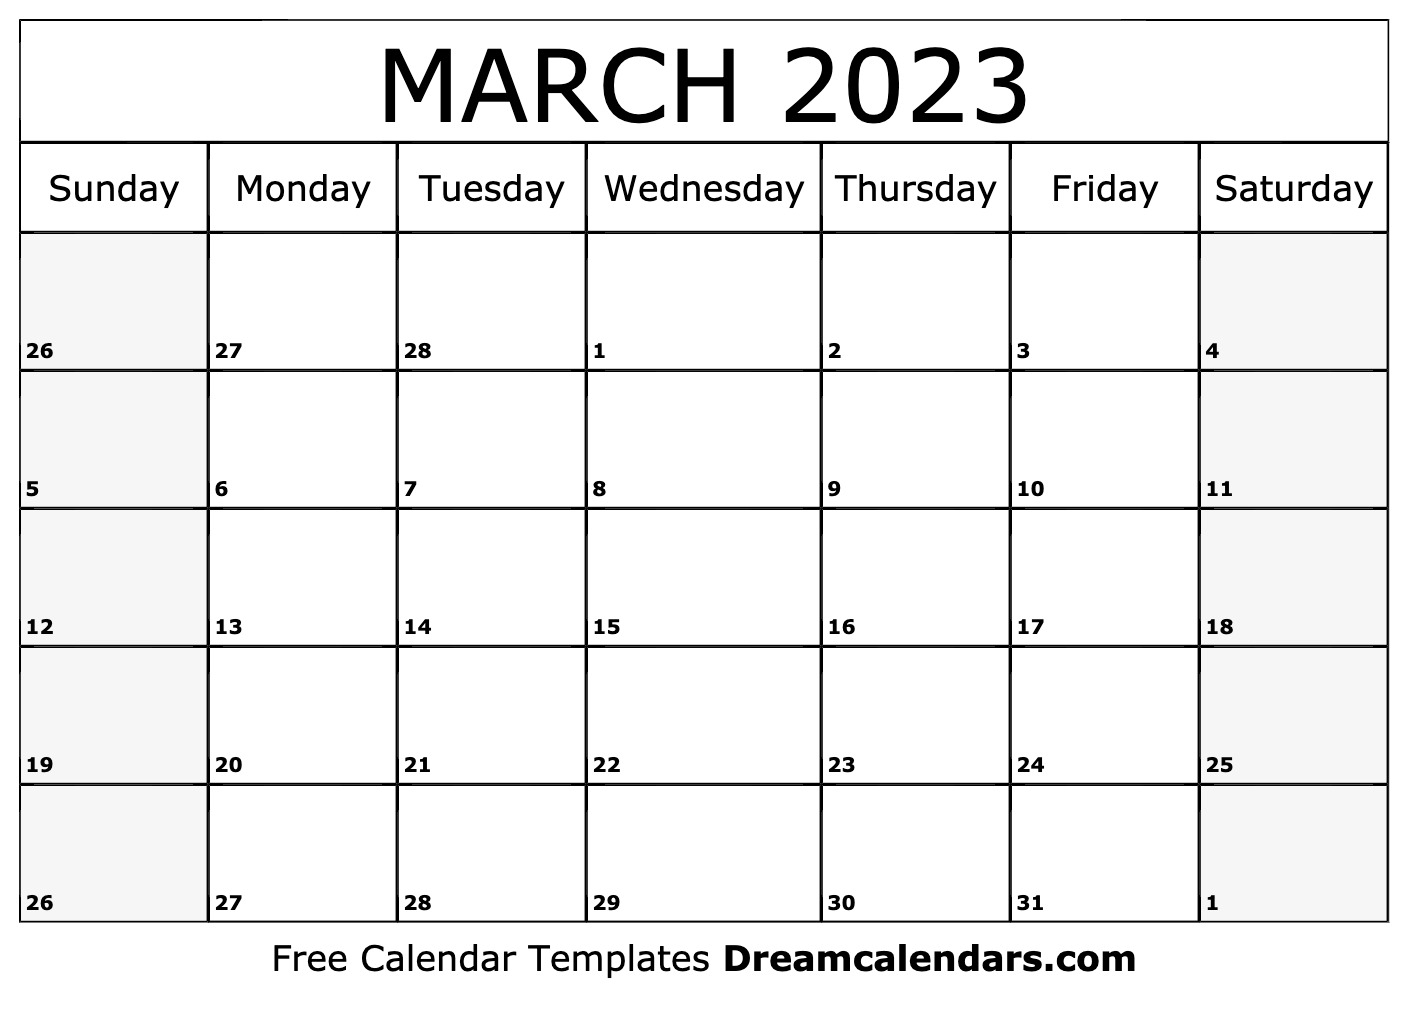 March 2023 Calendar | Free Blank Printable Templates in Sunset And Sunrise Calender 2022 2023